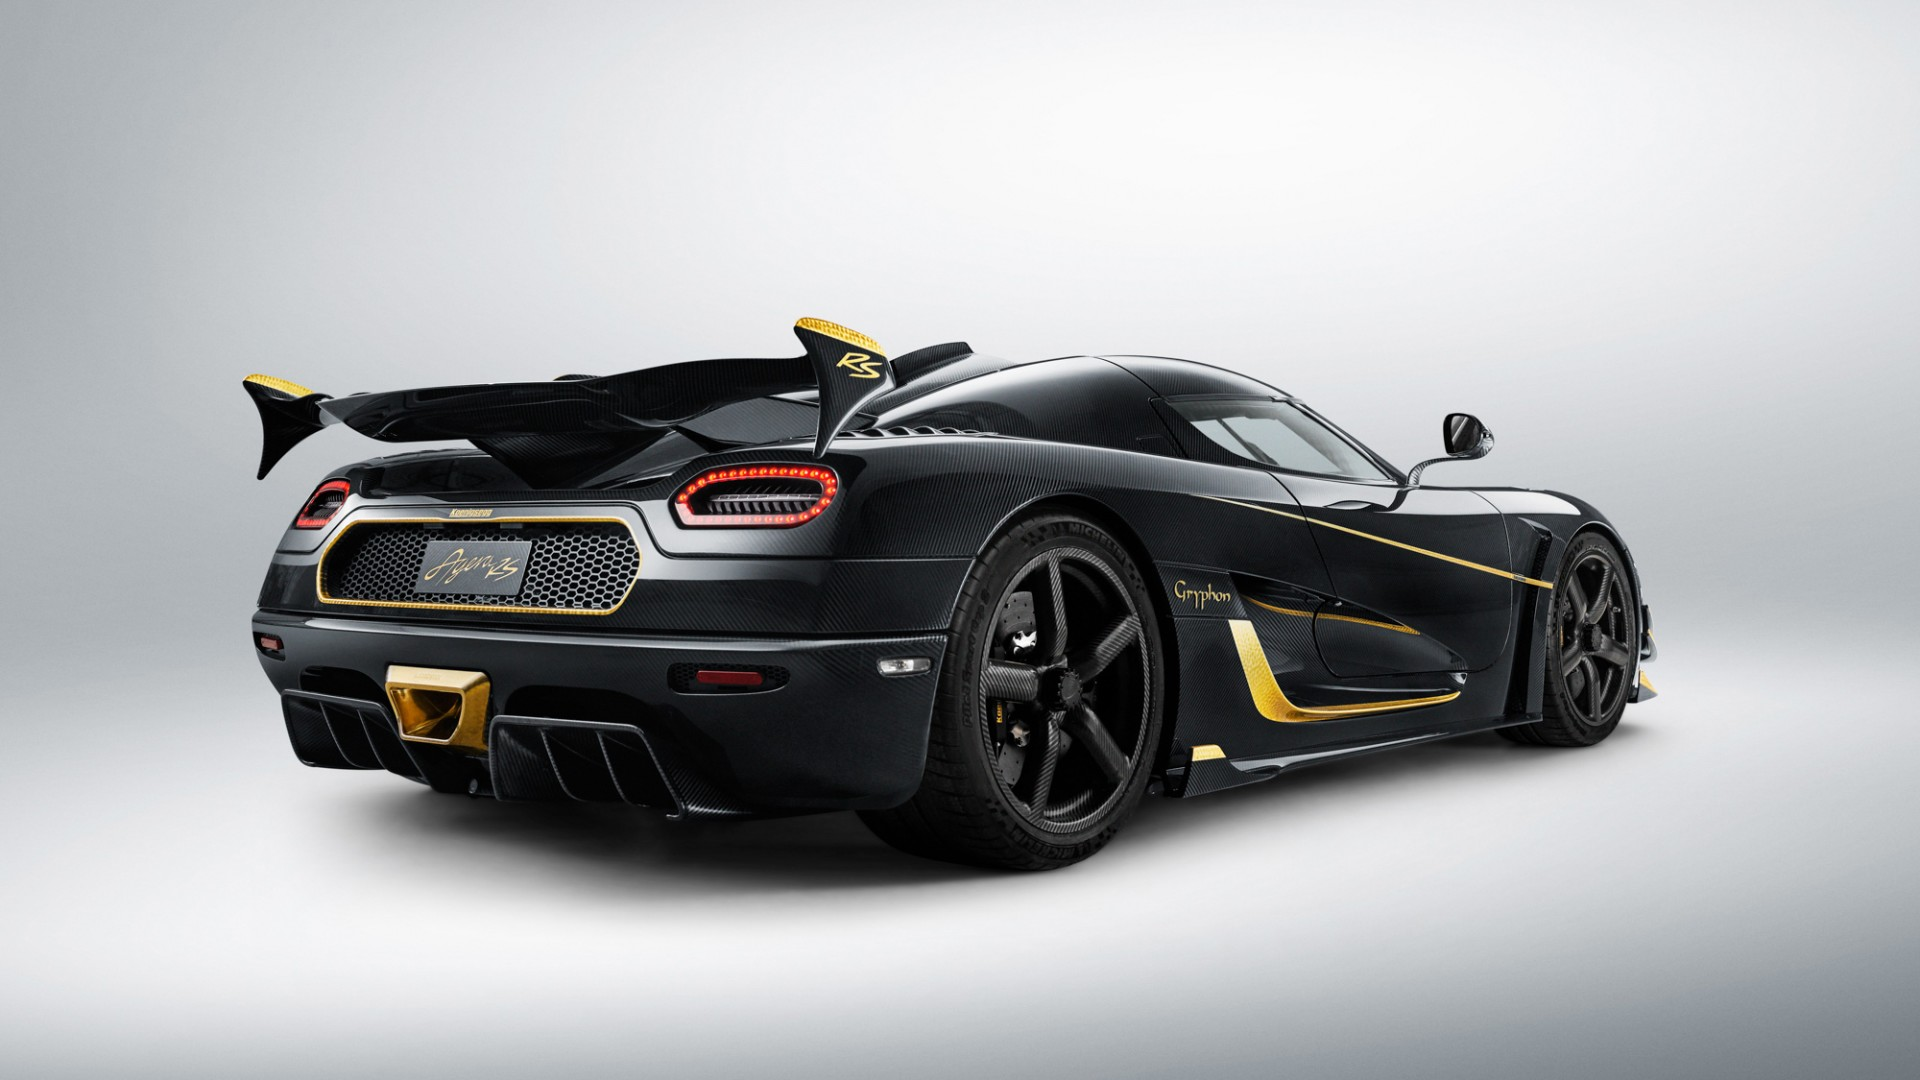 2017 Koenigsegg Agera Rs Gryphon 2 Wallpaper Hd Car